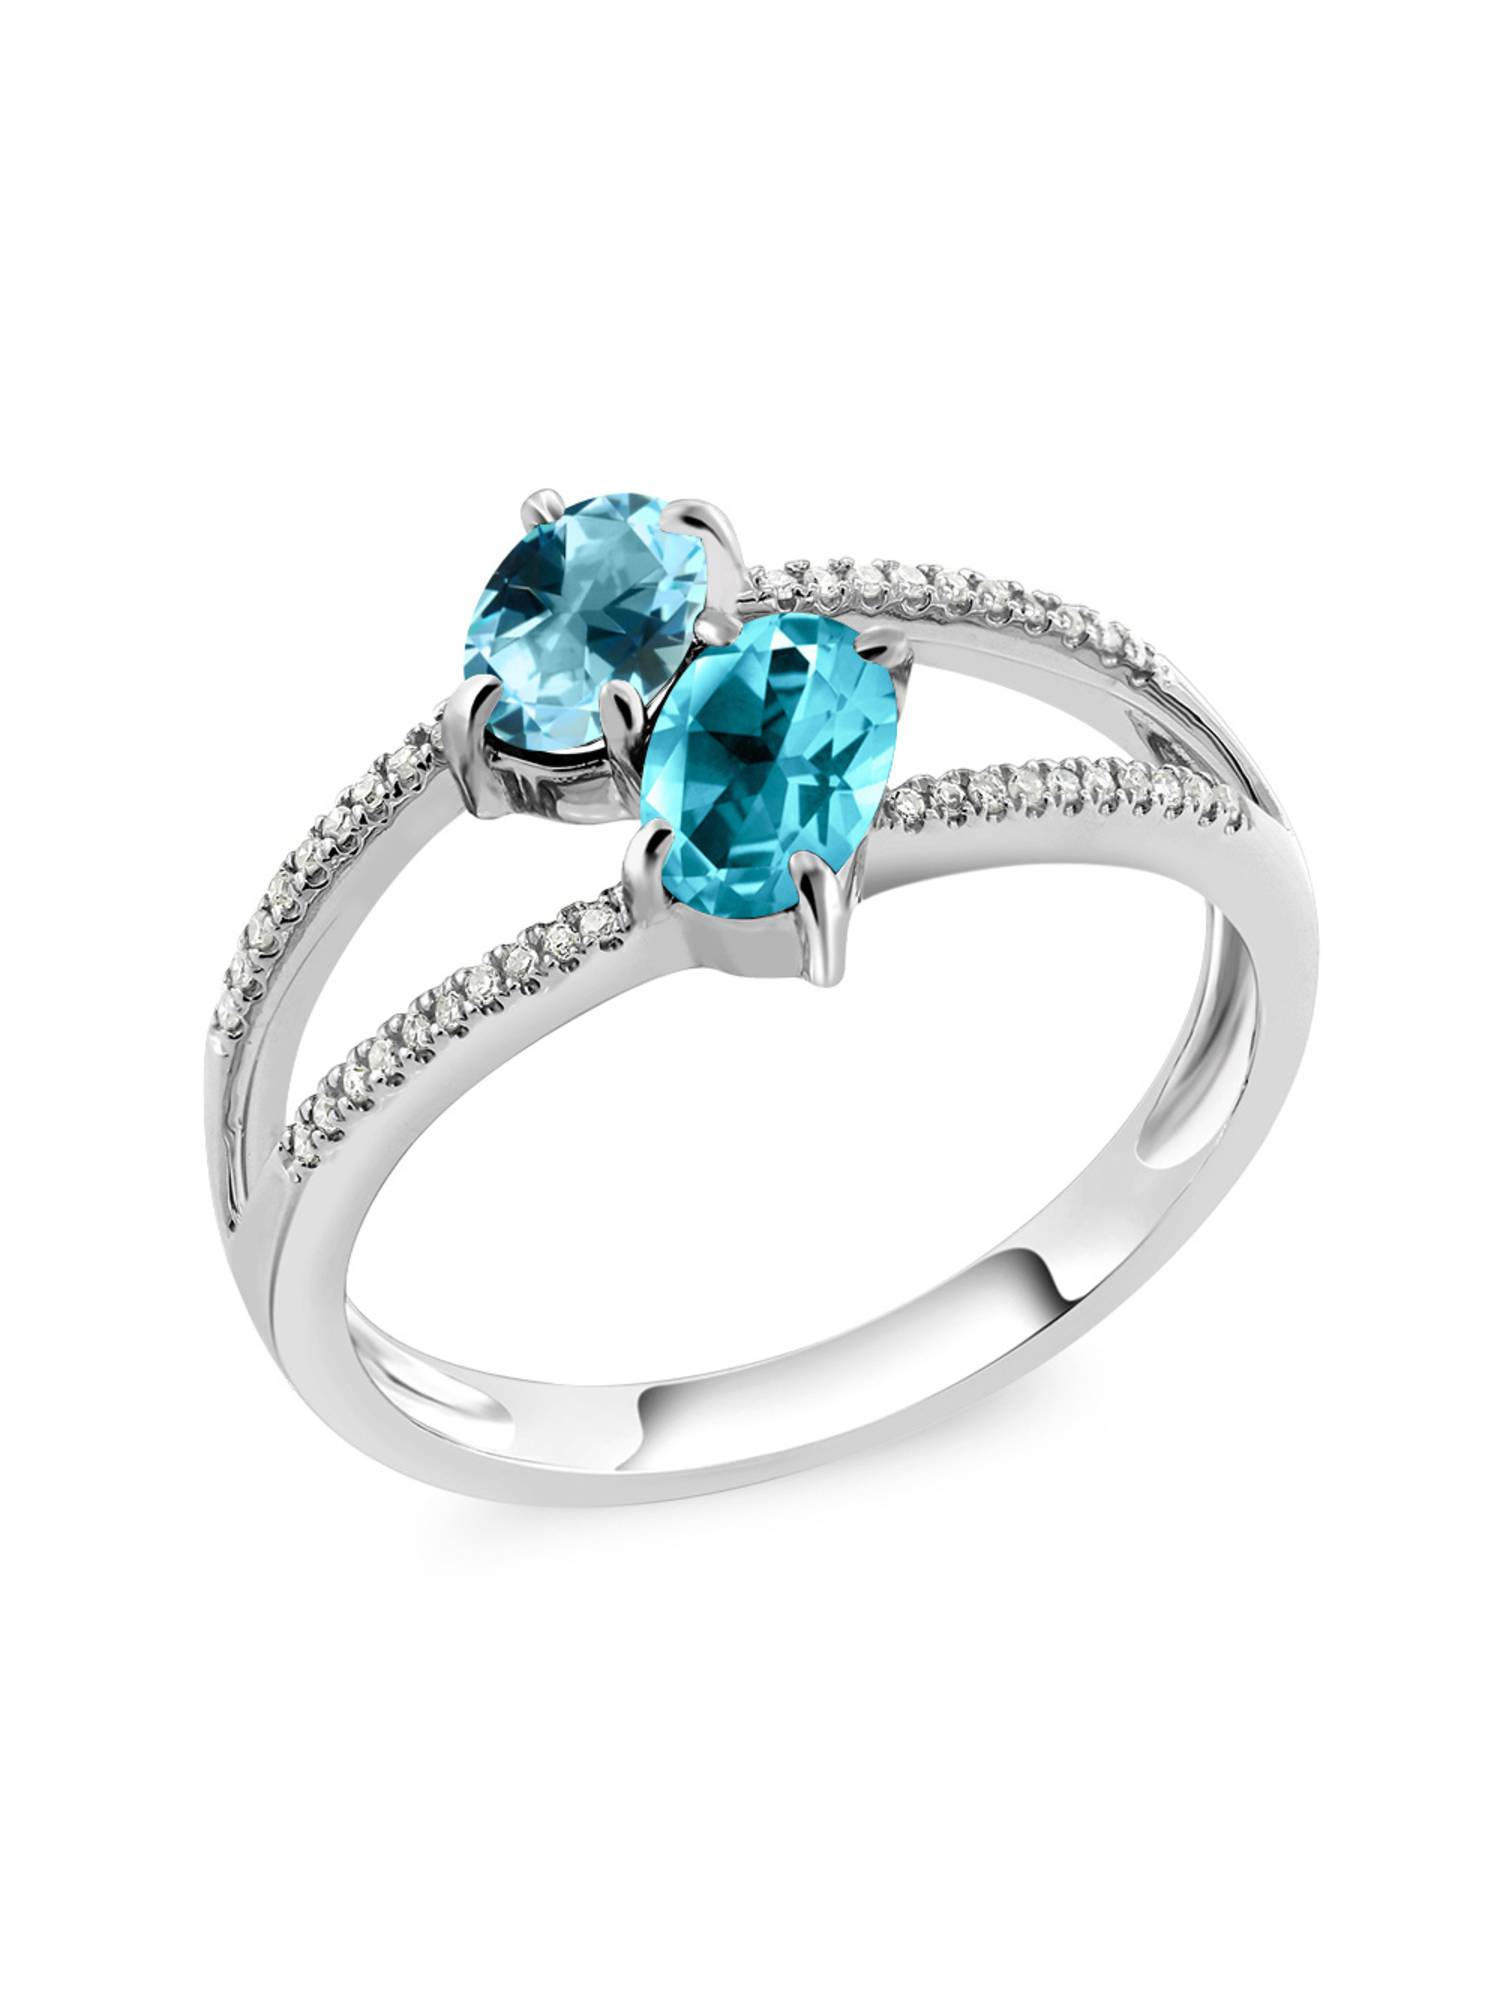 10K White Gold Diamond Ring Set with Oval Ice Blue Topaz from Swarvoski by